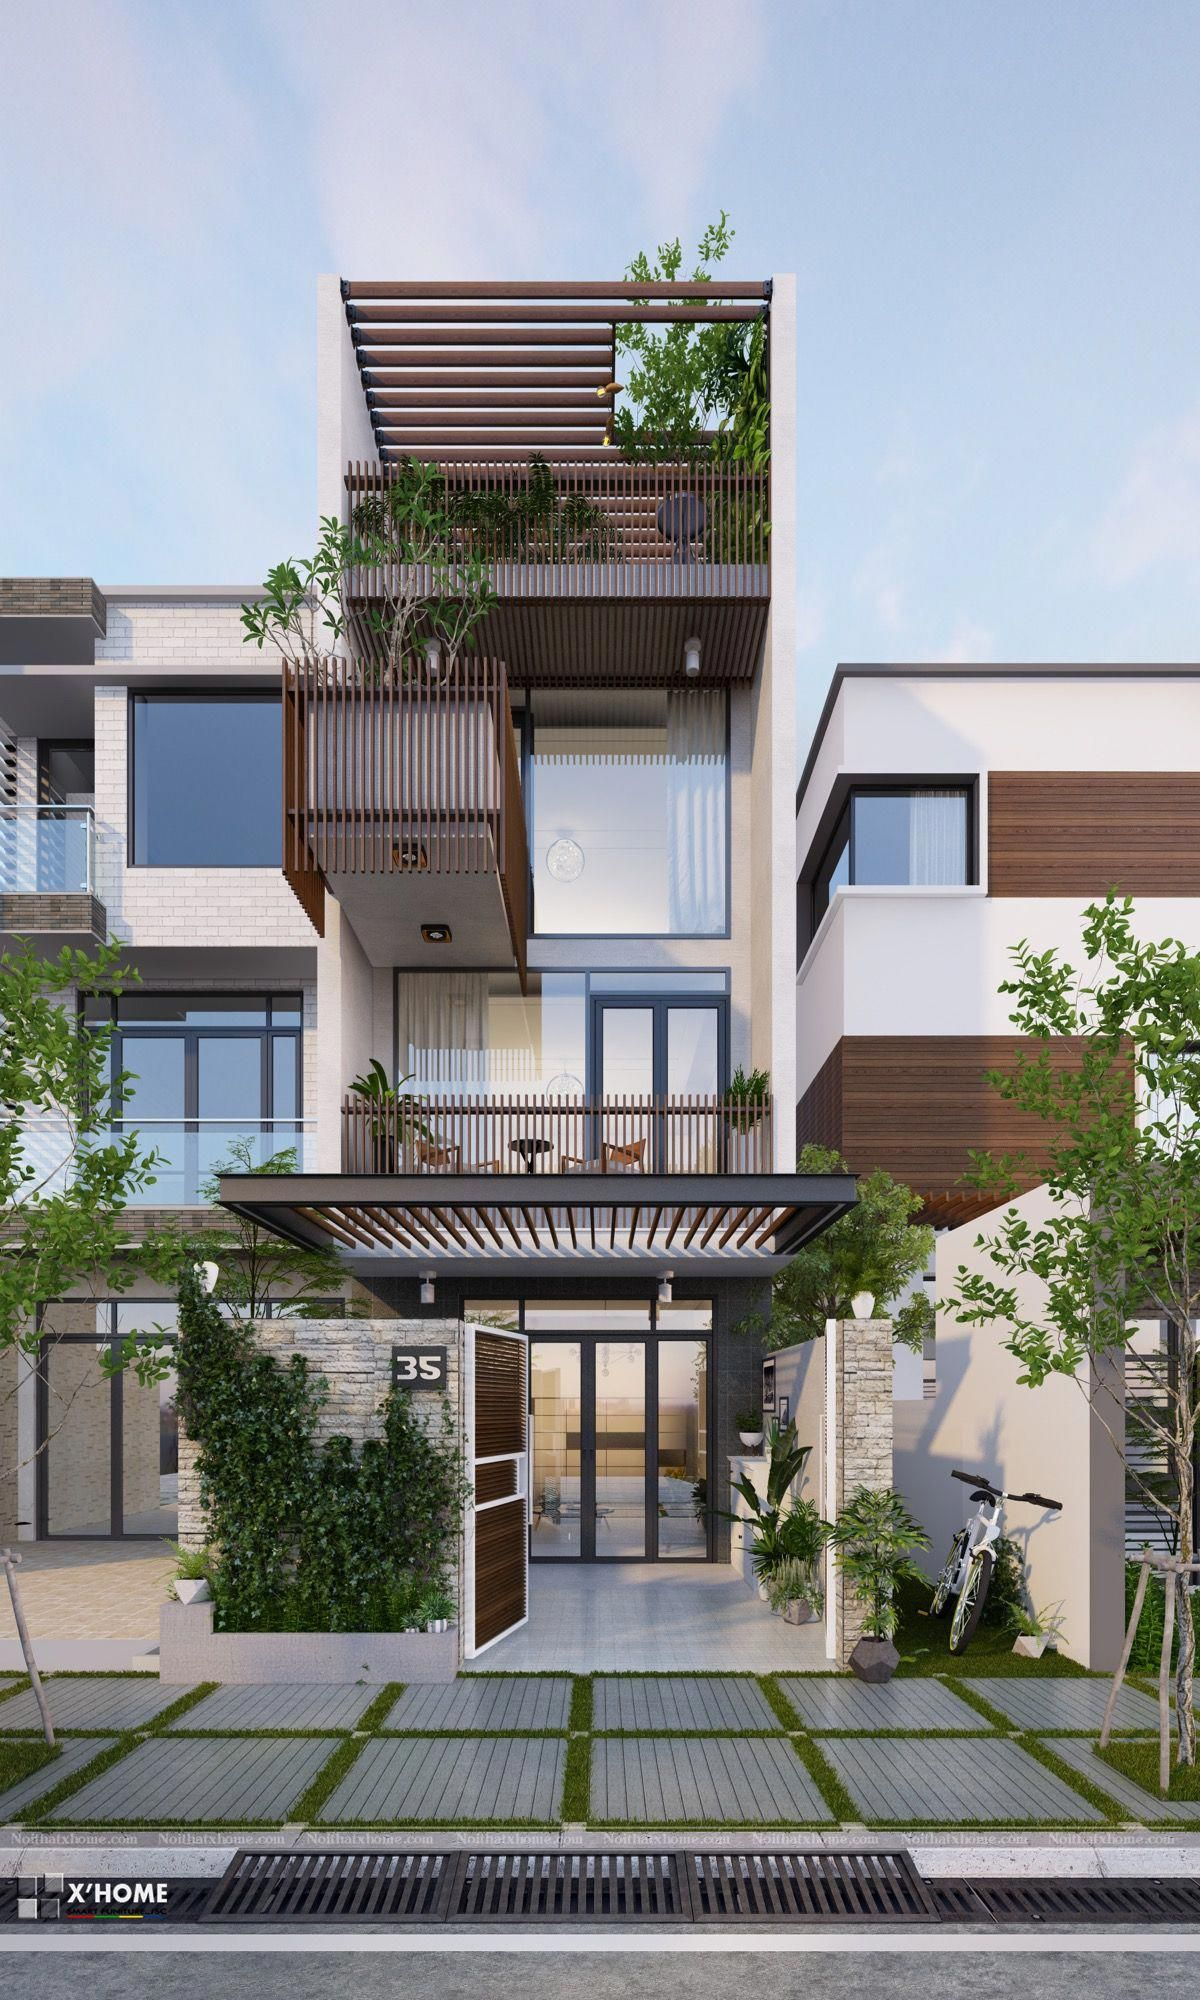 22 Modern Residences With Classy Exterior Designs: 50 Narrow Lot Houses That Transform A Skinny Exterior Into Something Special